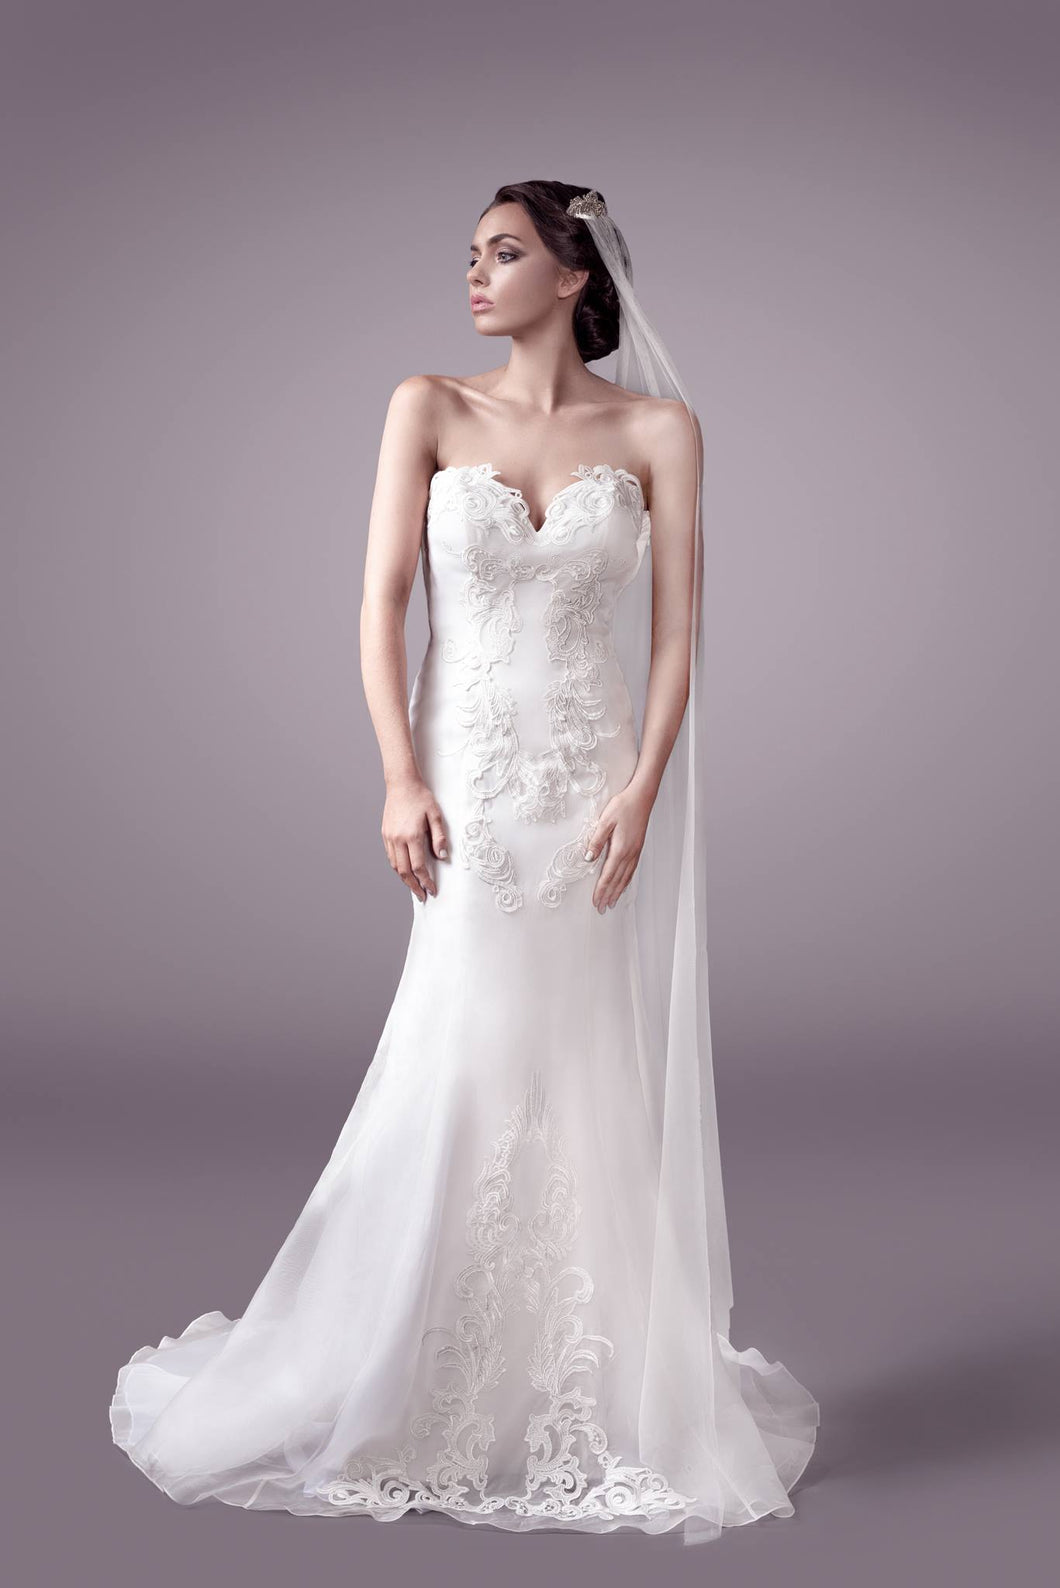 Elsa wedding dress bridal gown Perth - 9323F